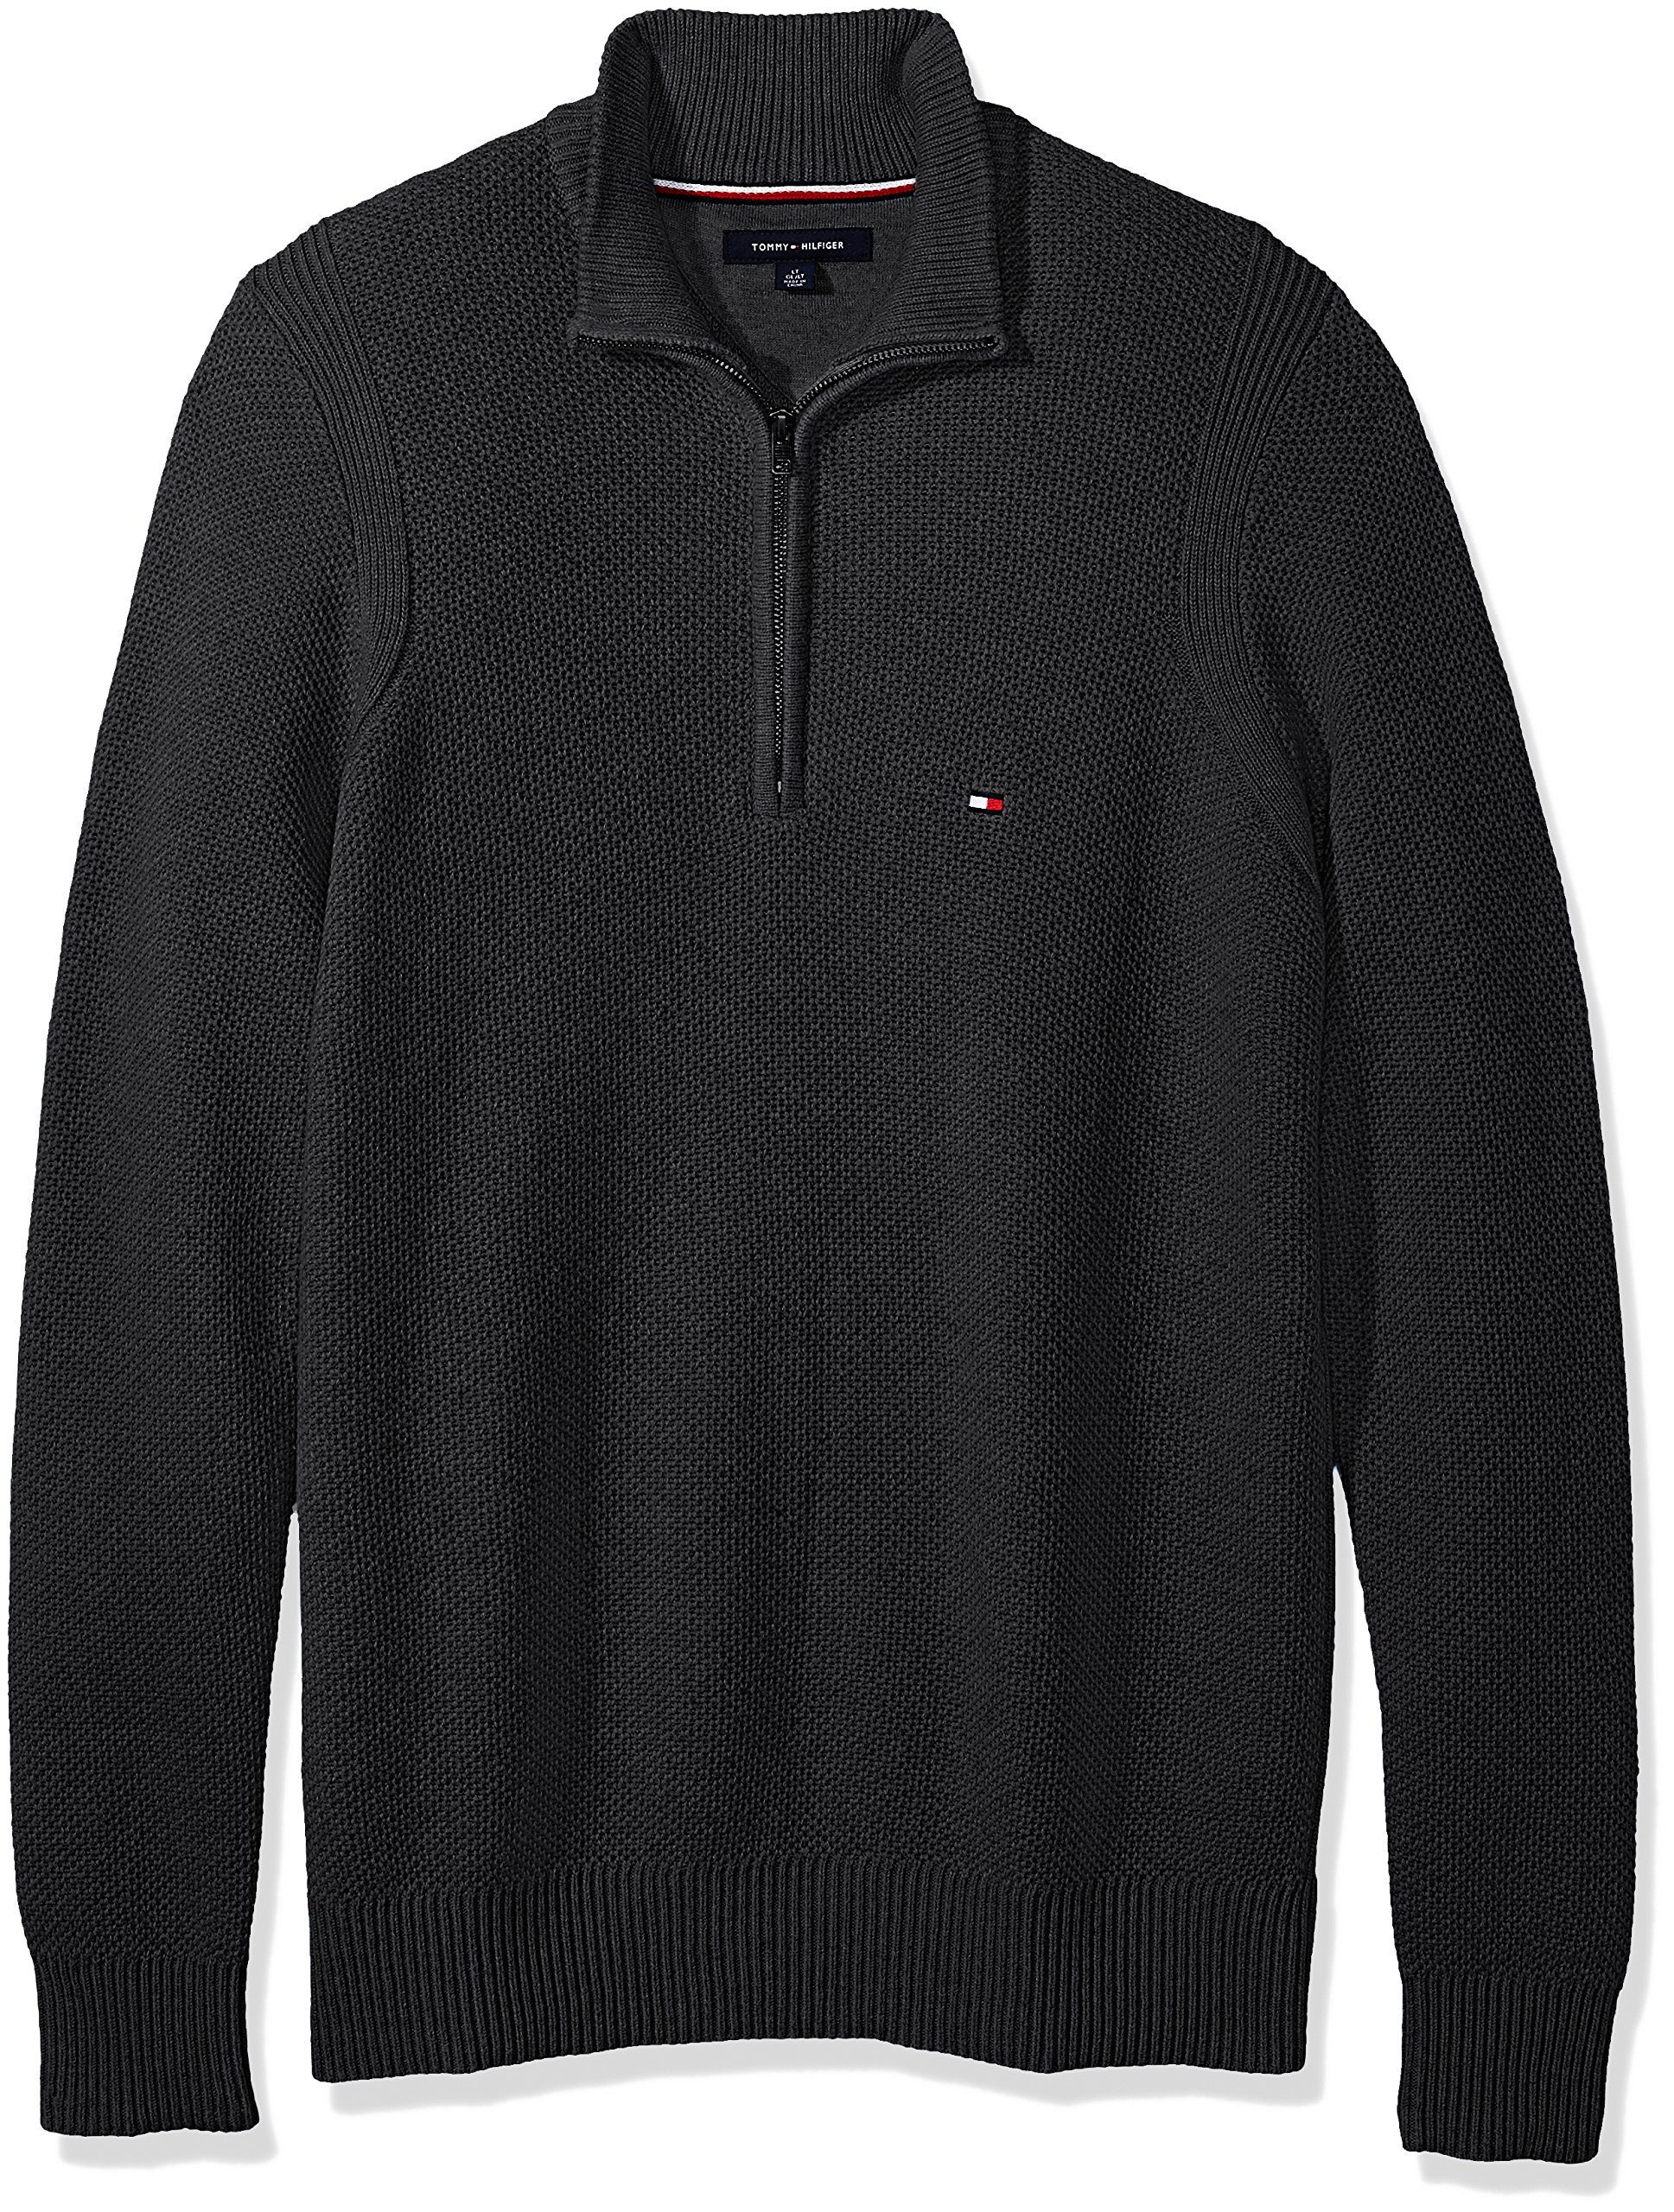 Tommy Hilfiger Men's Big and Tall 1/4 Zip Pullover Sweater, Charcoal Grey Heather, BG-2XL